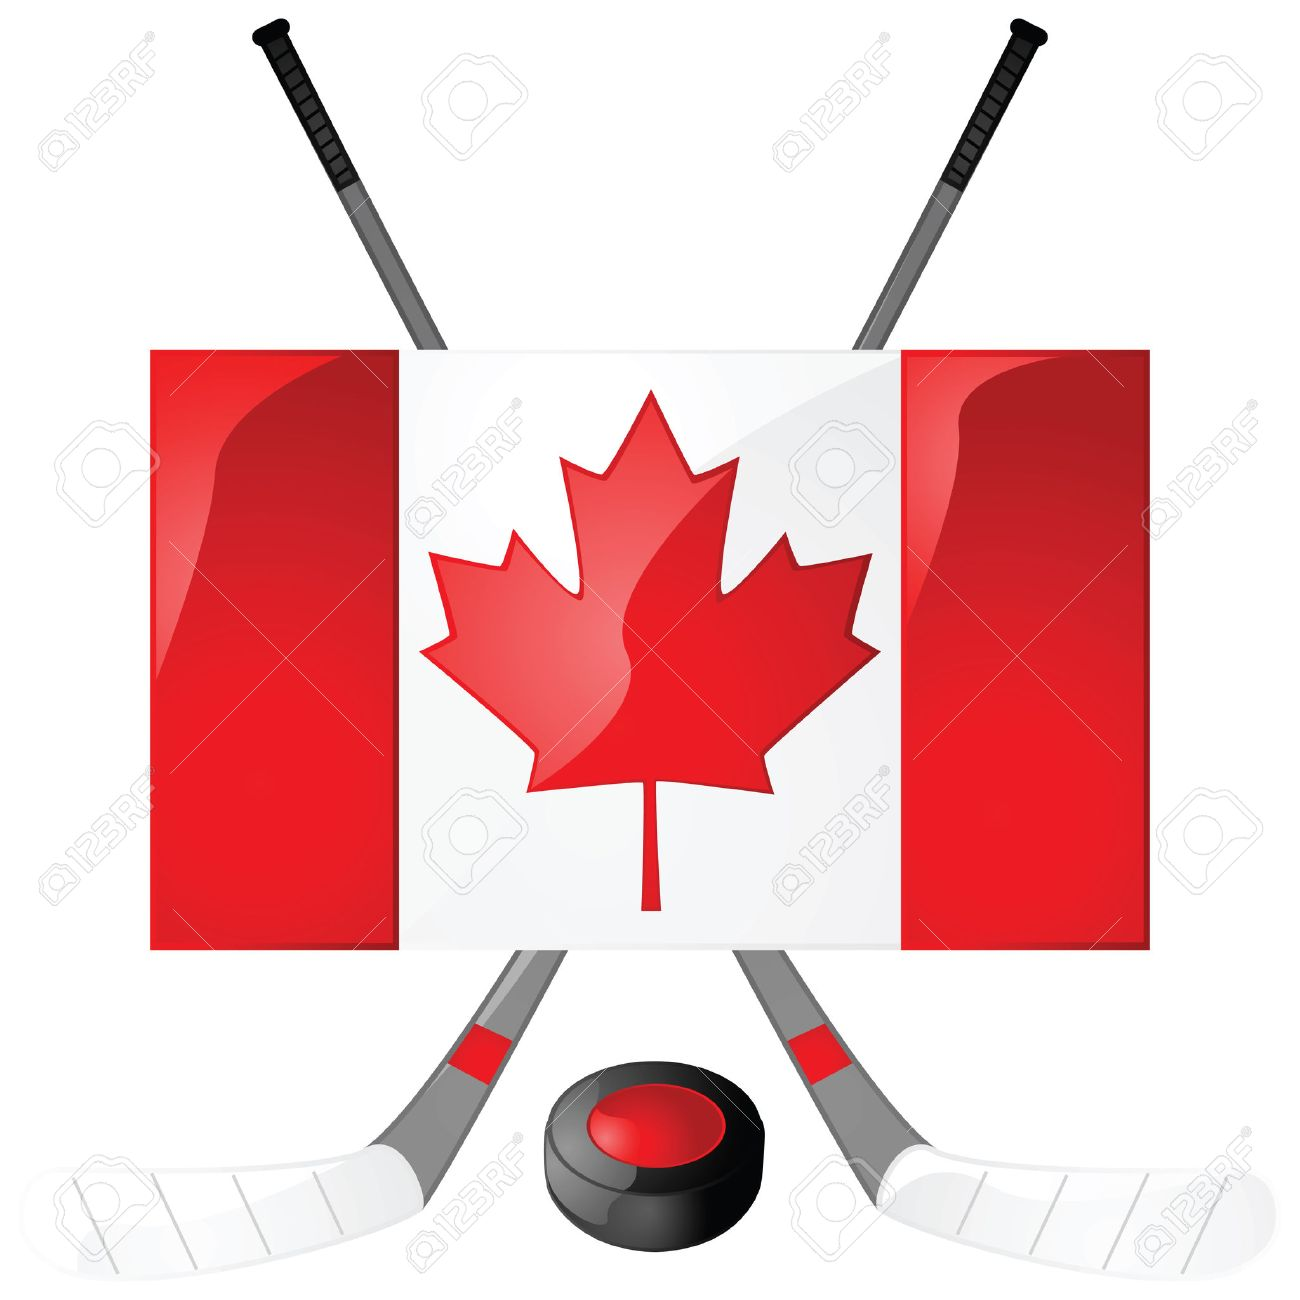 Illustration Of Hockey Sticks Puck And A Canadian Flag Royalty Free